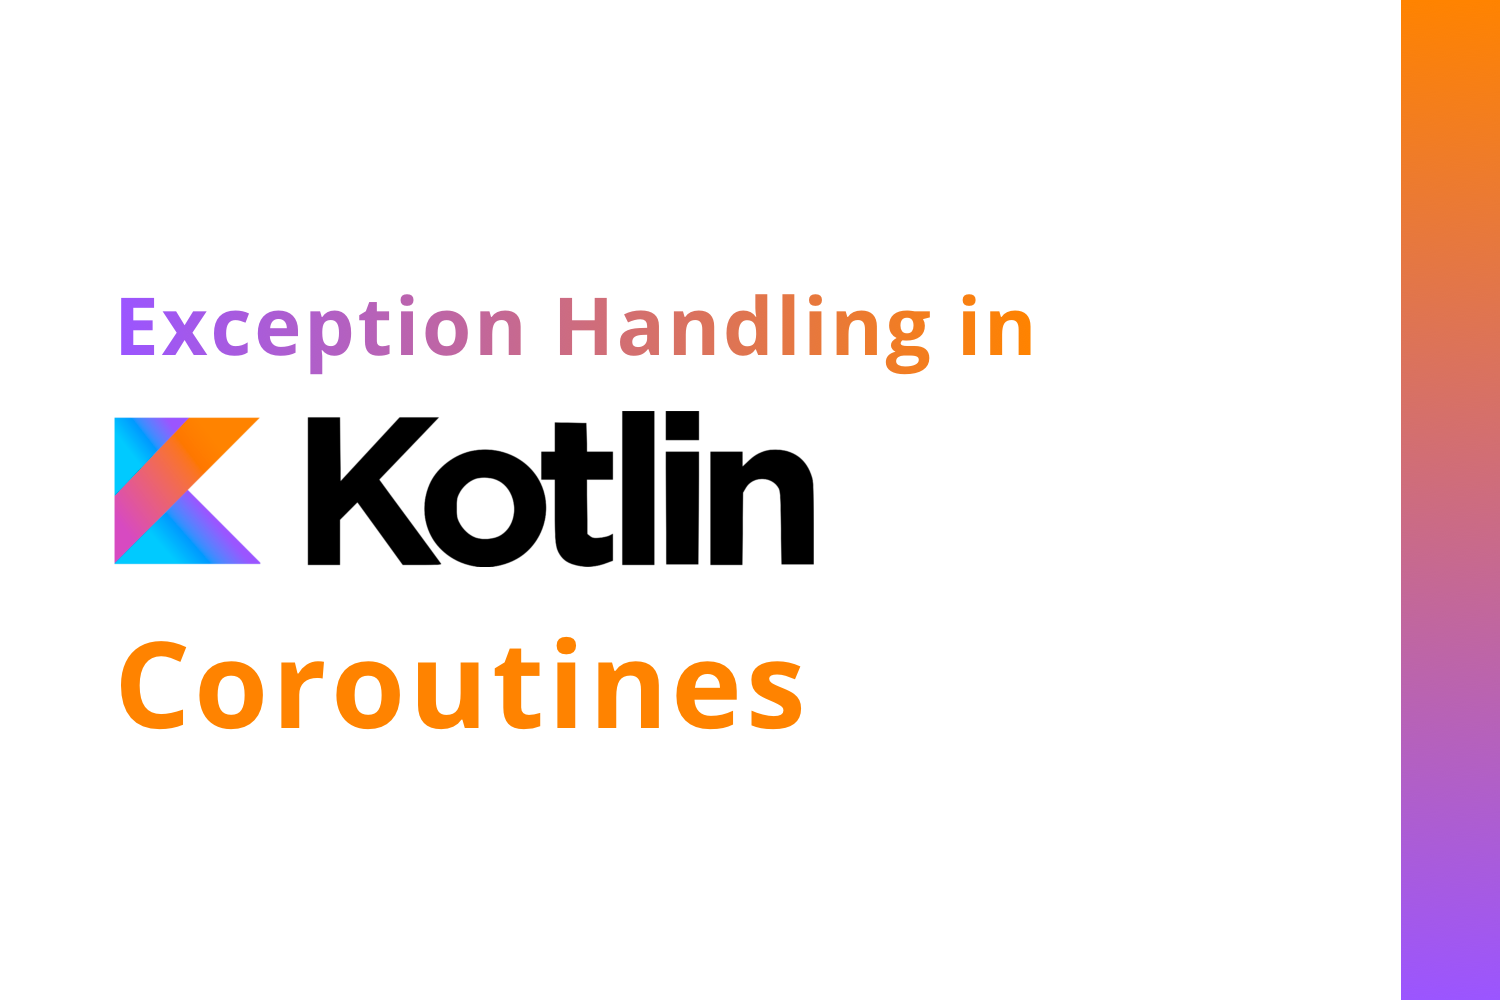 Exception Handling in Kotlin Coroutines